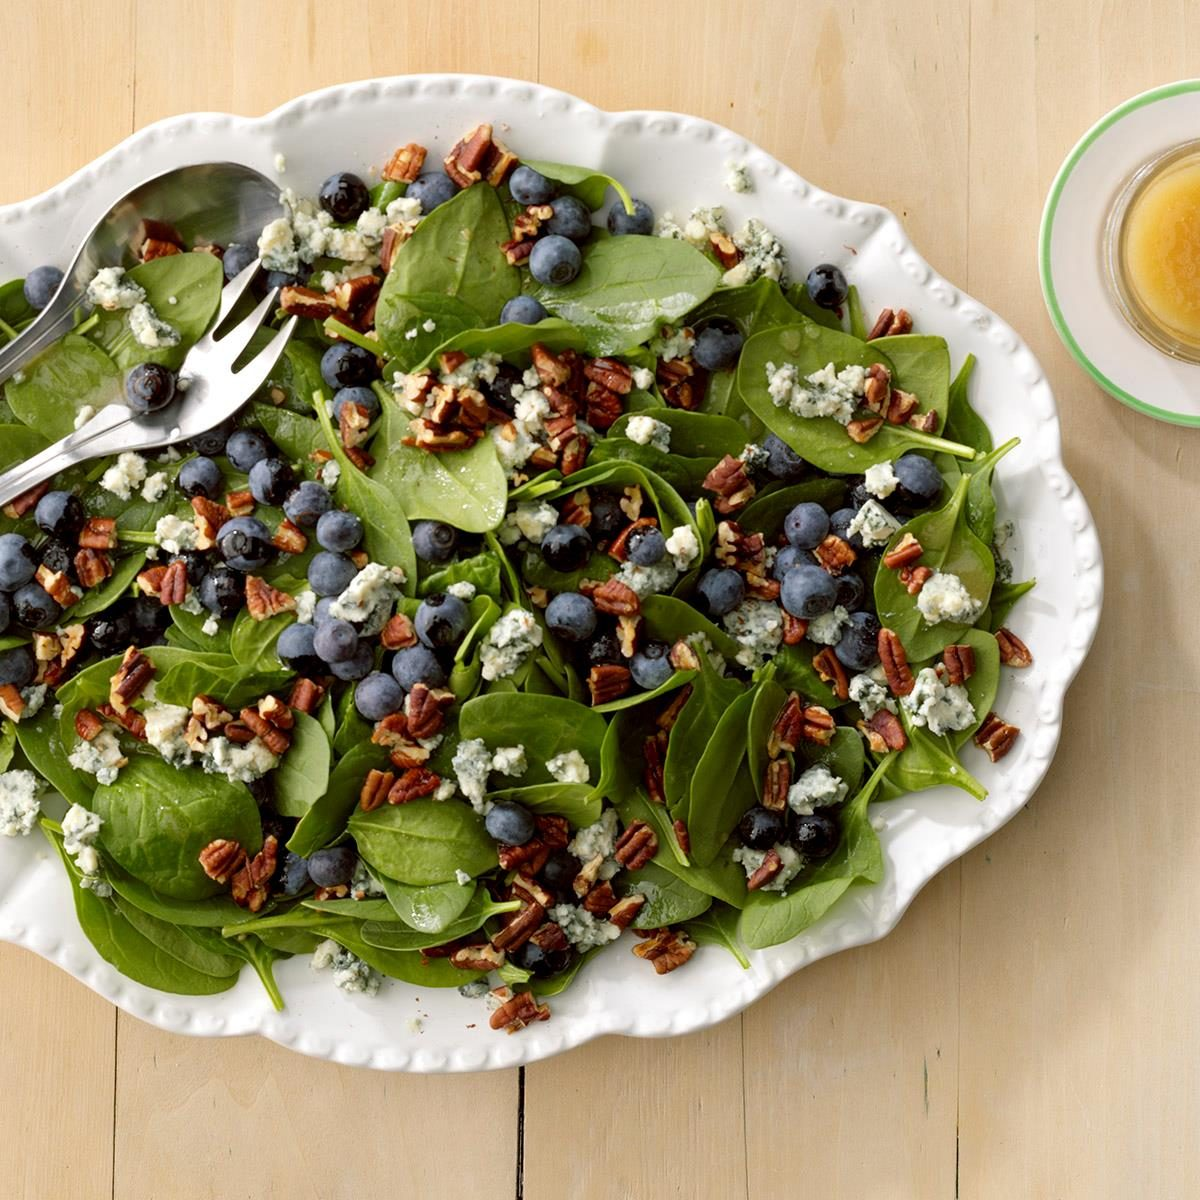 Spinach Blueberry Salad